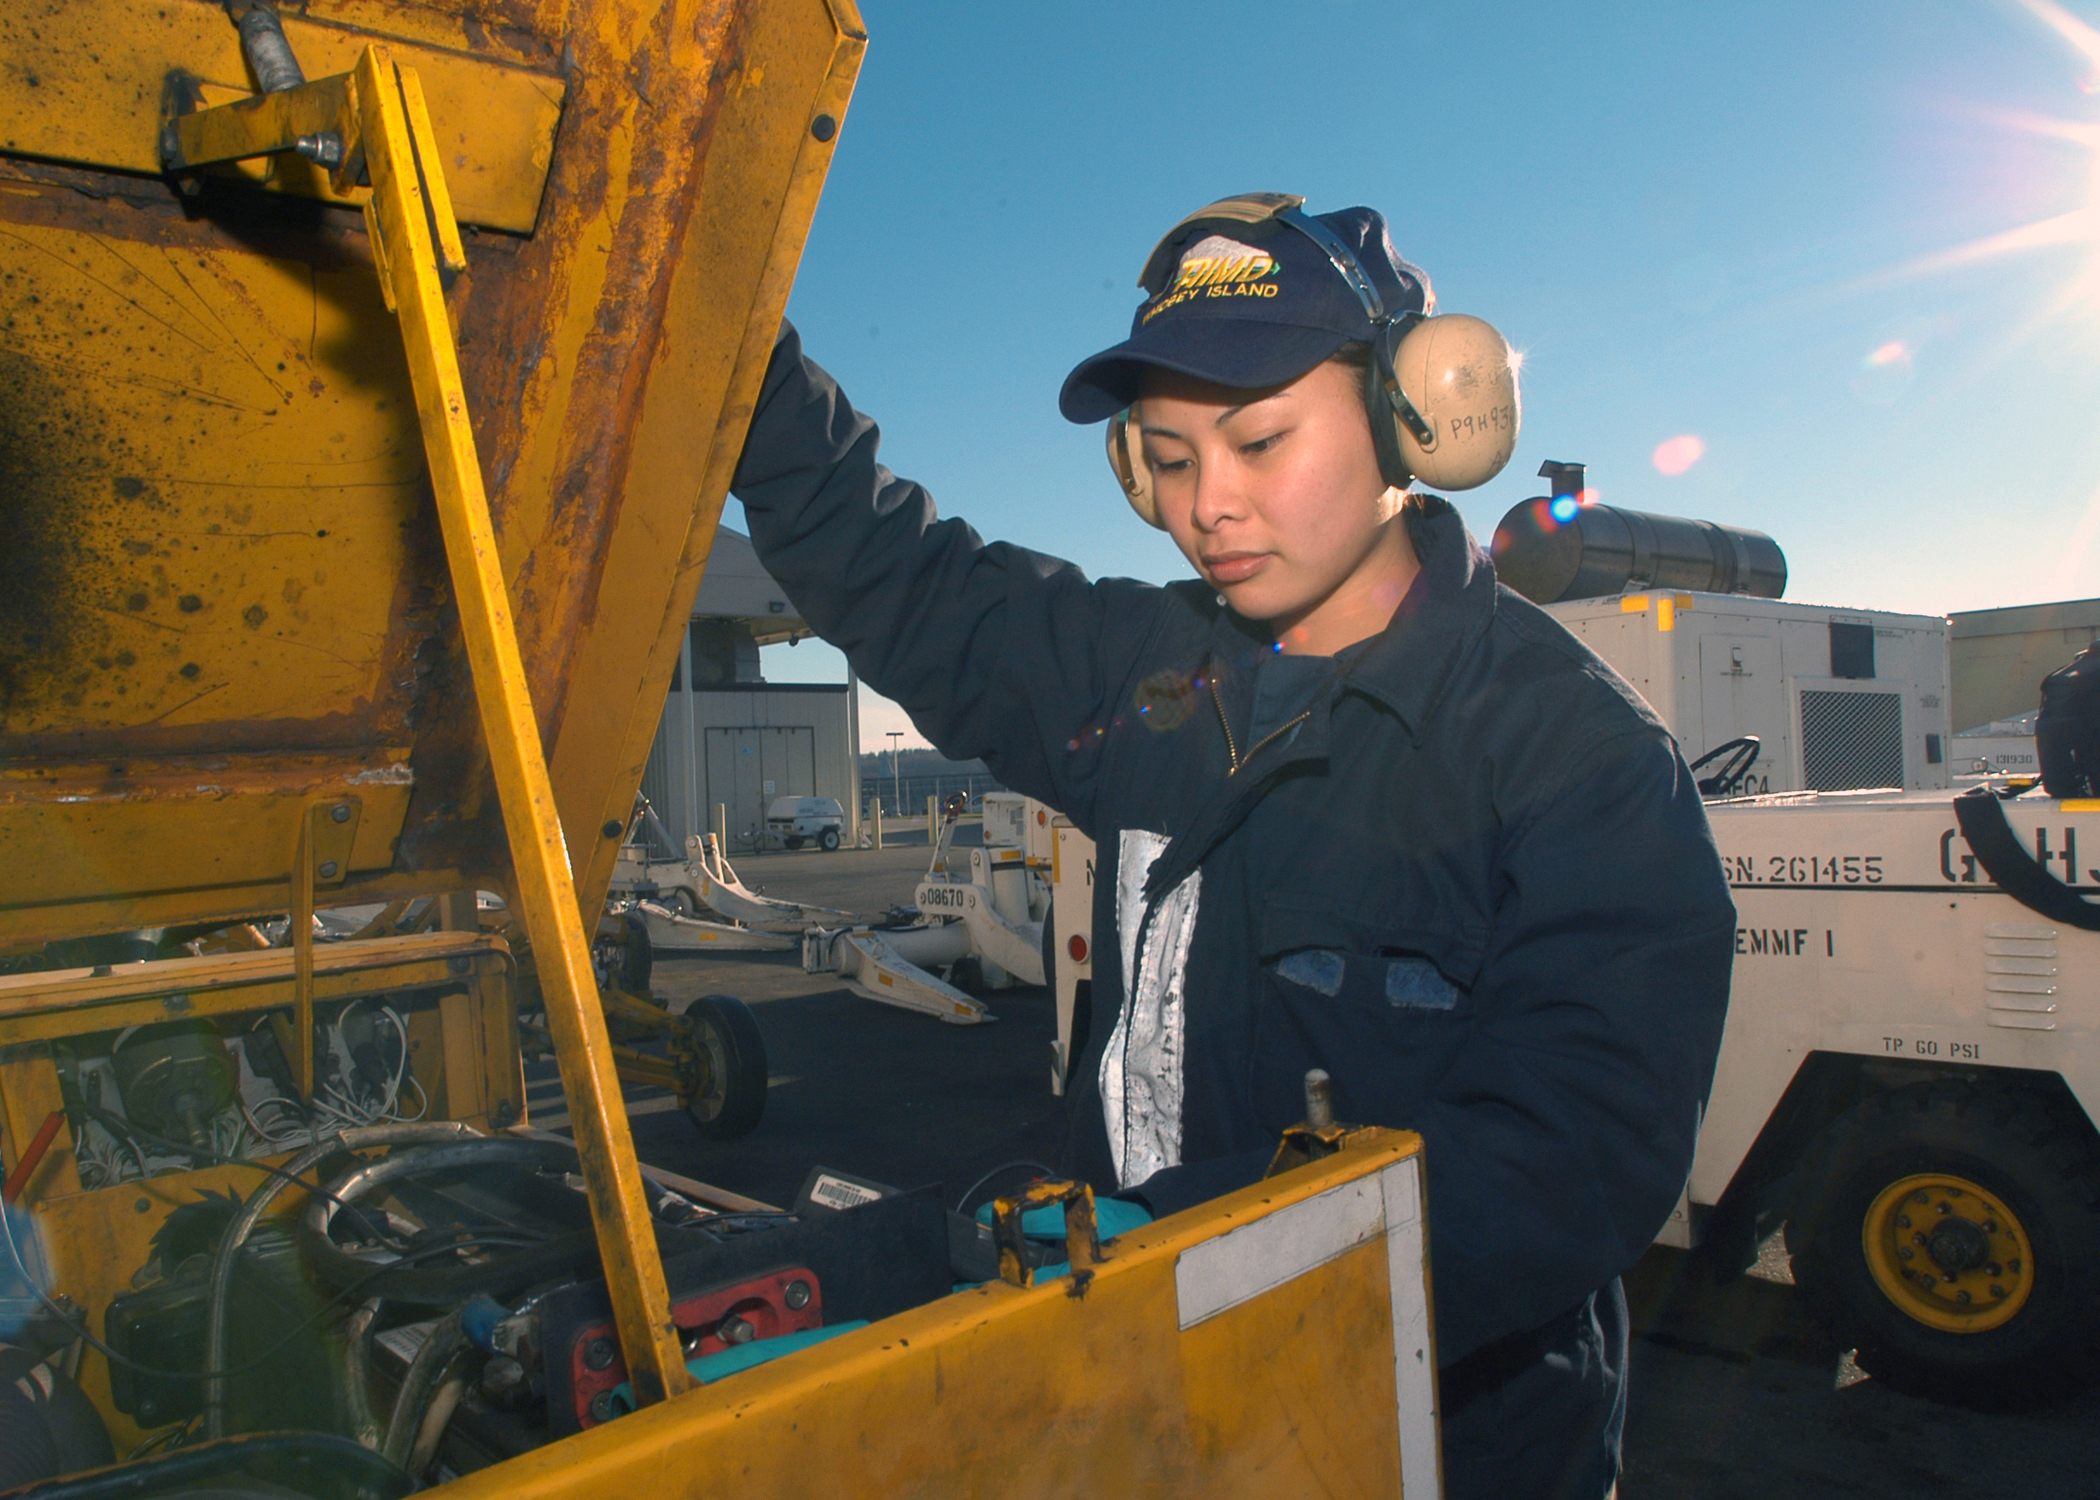 File:US Navy 040211-N-5134H-002 Equipment Technician 2nd Class